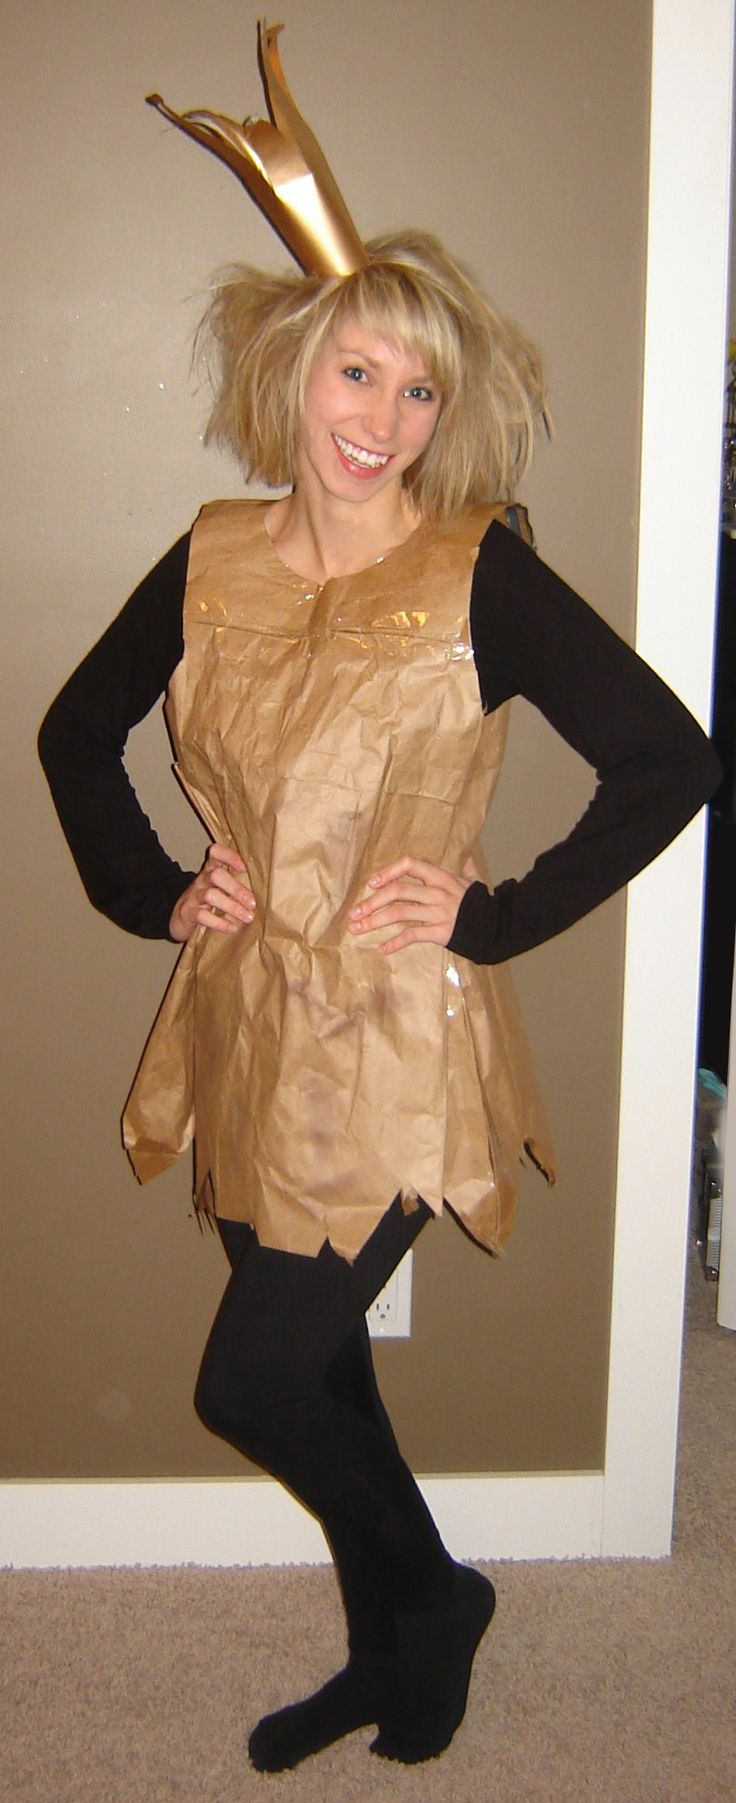 Paperbag princess - looks like I found my character parade costume!